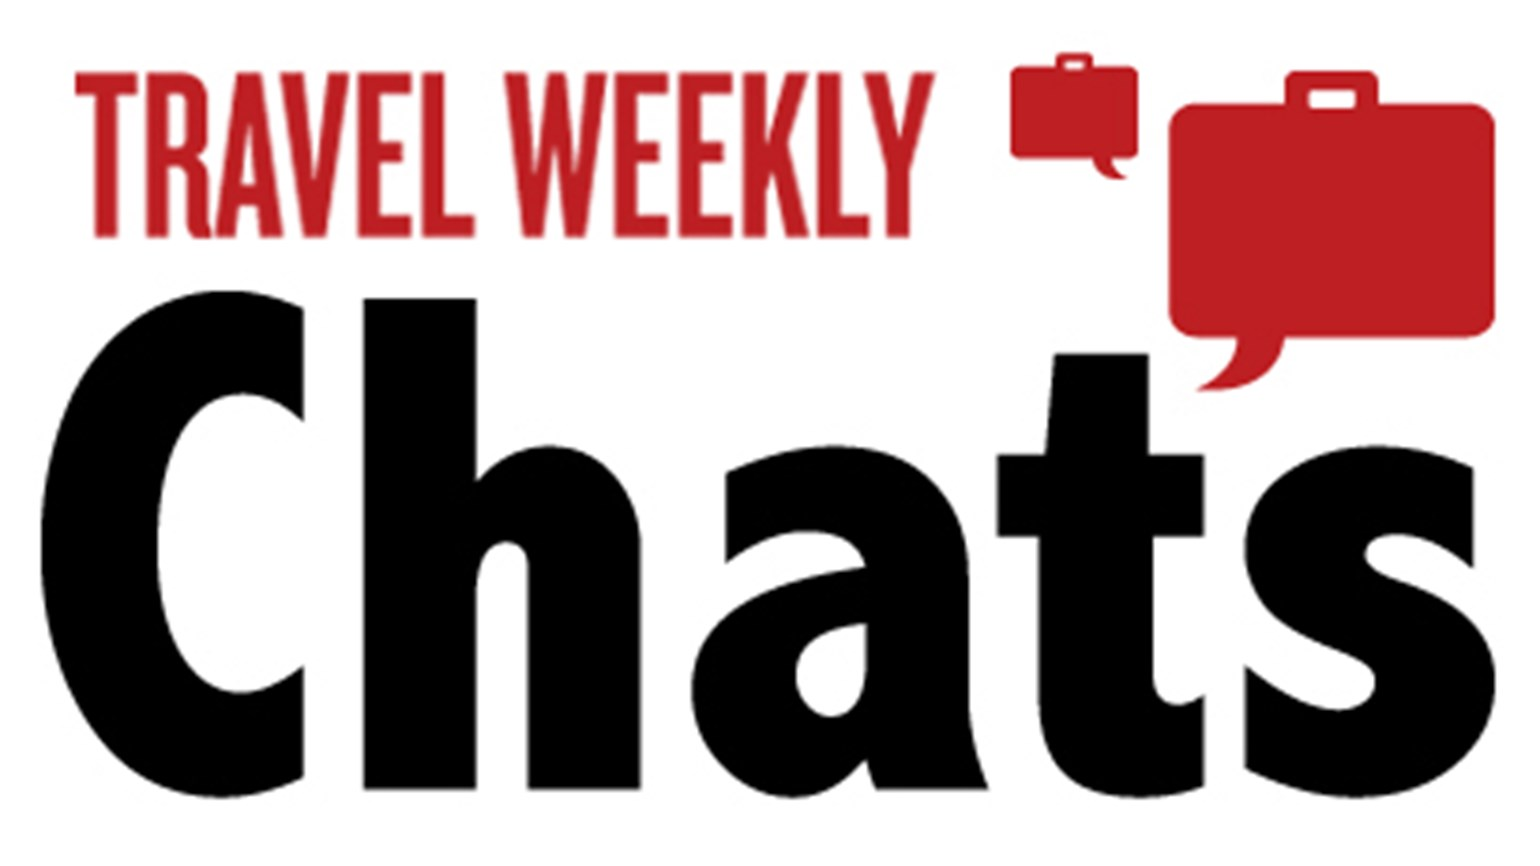 TW Chats on Twitter, March 11: Foodie travel